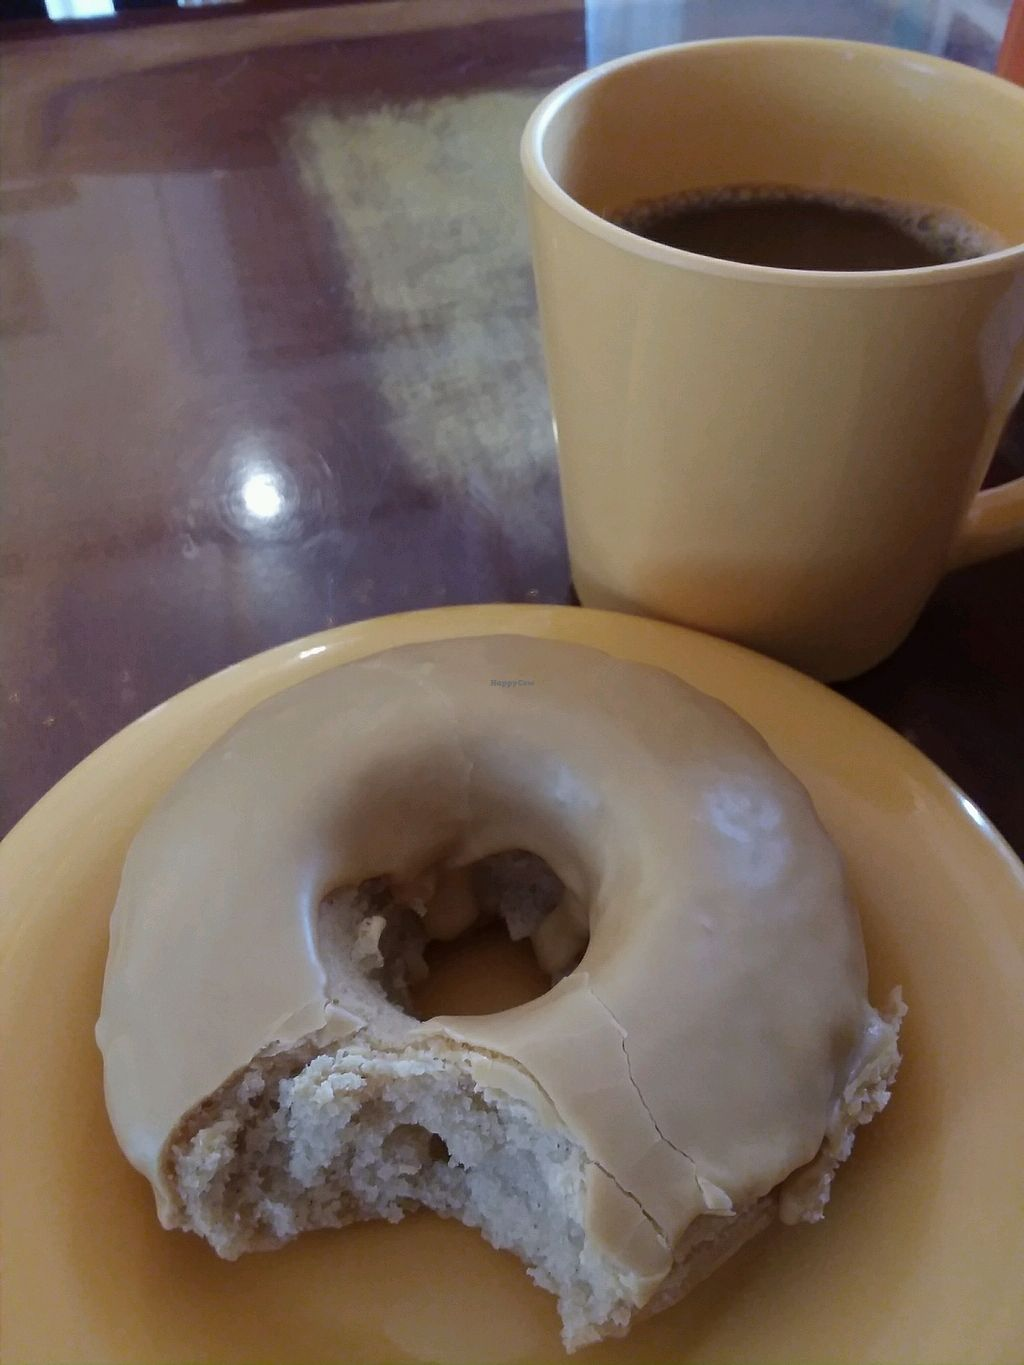 """Photo of Kahiau's Bakery & Cafe  by <a href=""""/members/profile/Tellitlikeitis"""">Tellitlikeitis</a> <br/>Donut & Coffee <br/> April 9, 2018  - <a href='/contact/abuse/image/92367/382913'>Report</a>"""